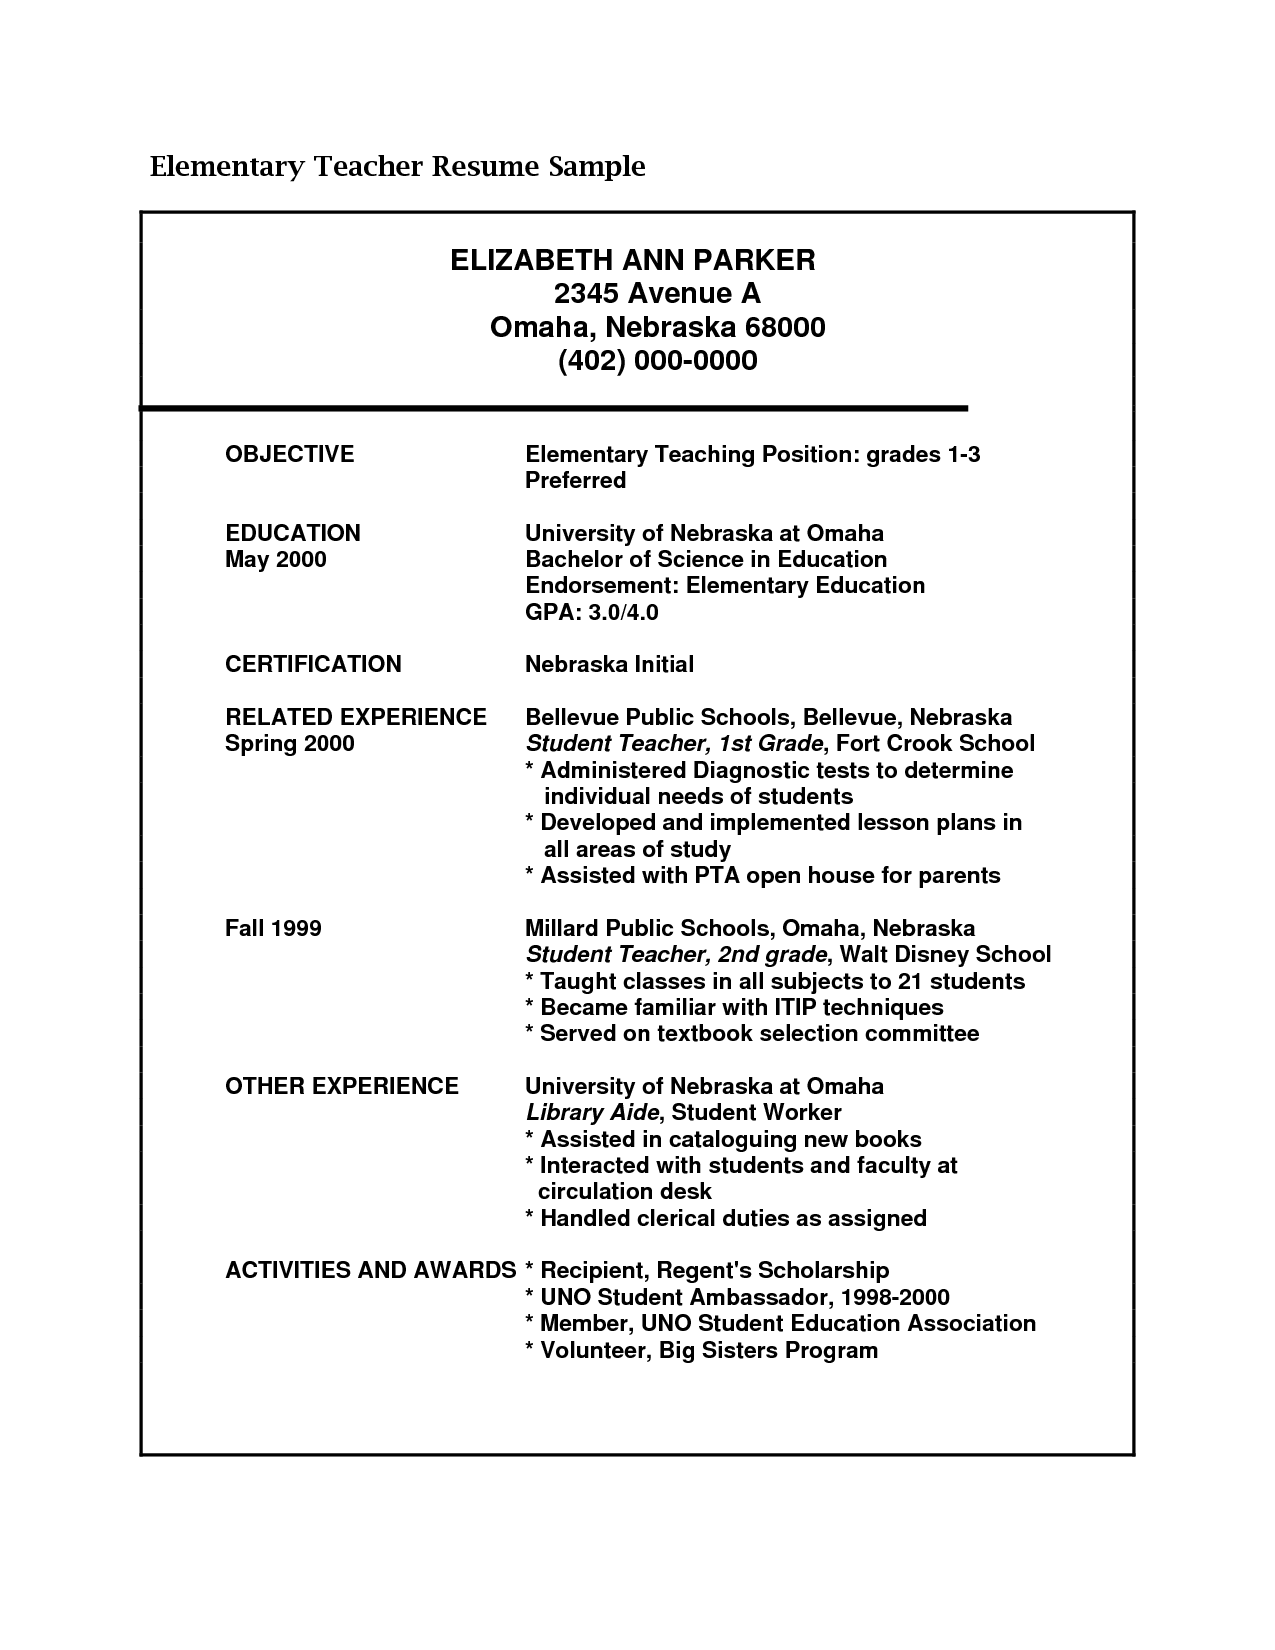 teaching job resume example - Template